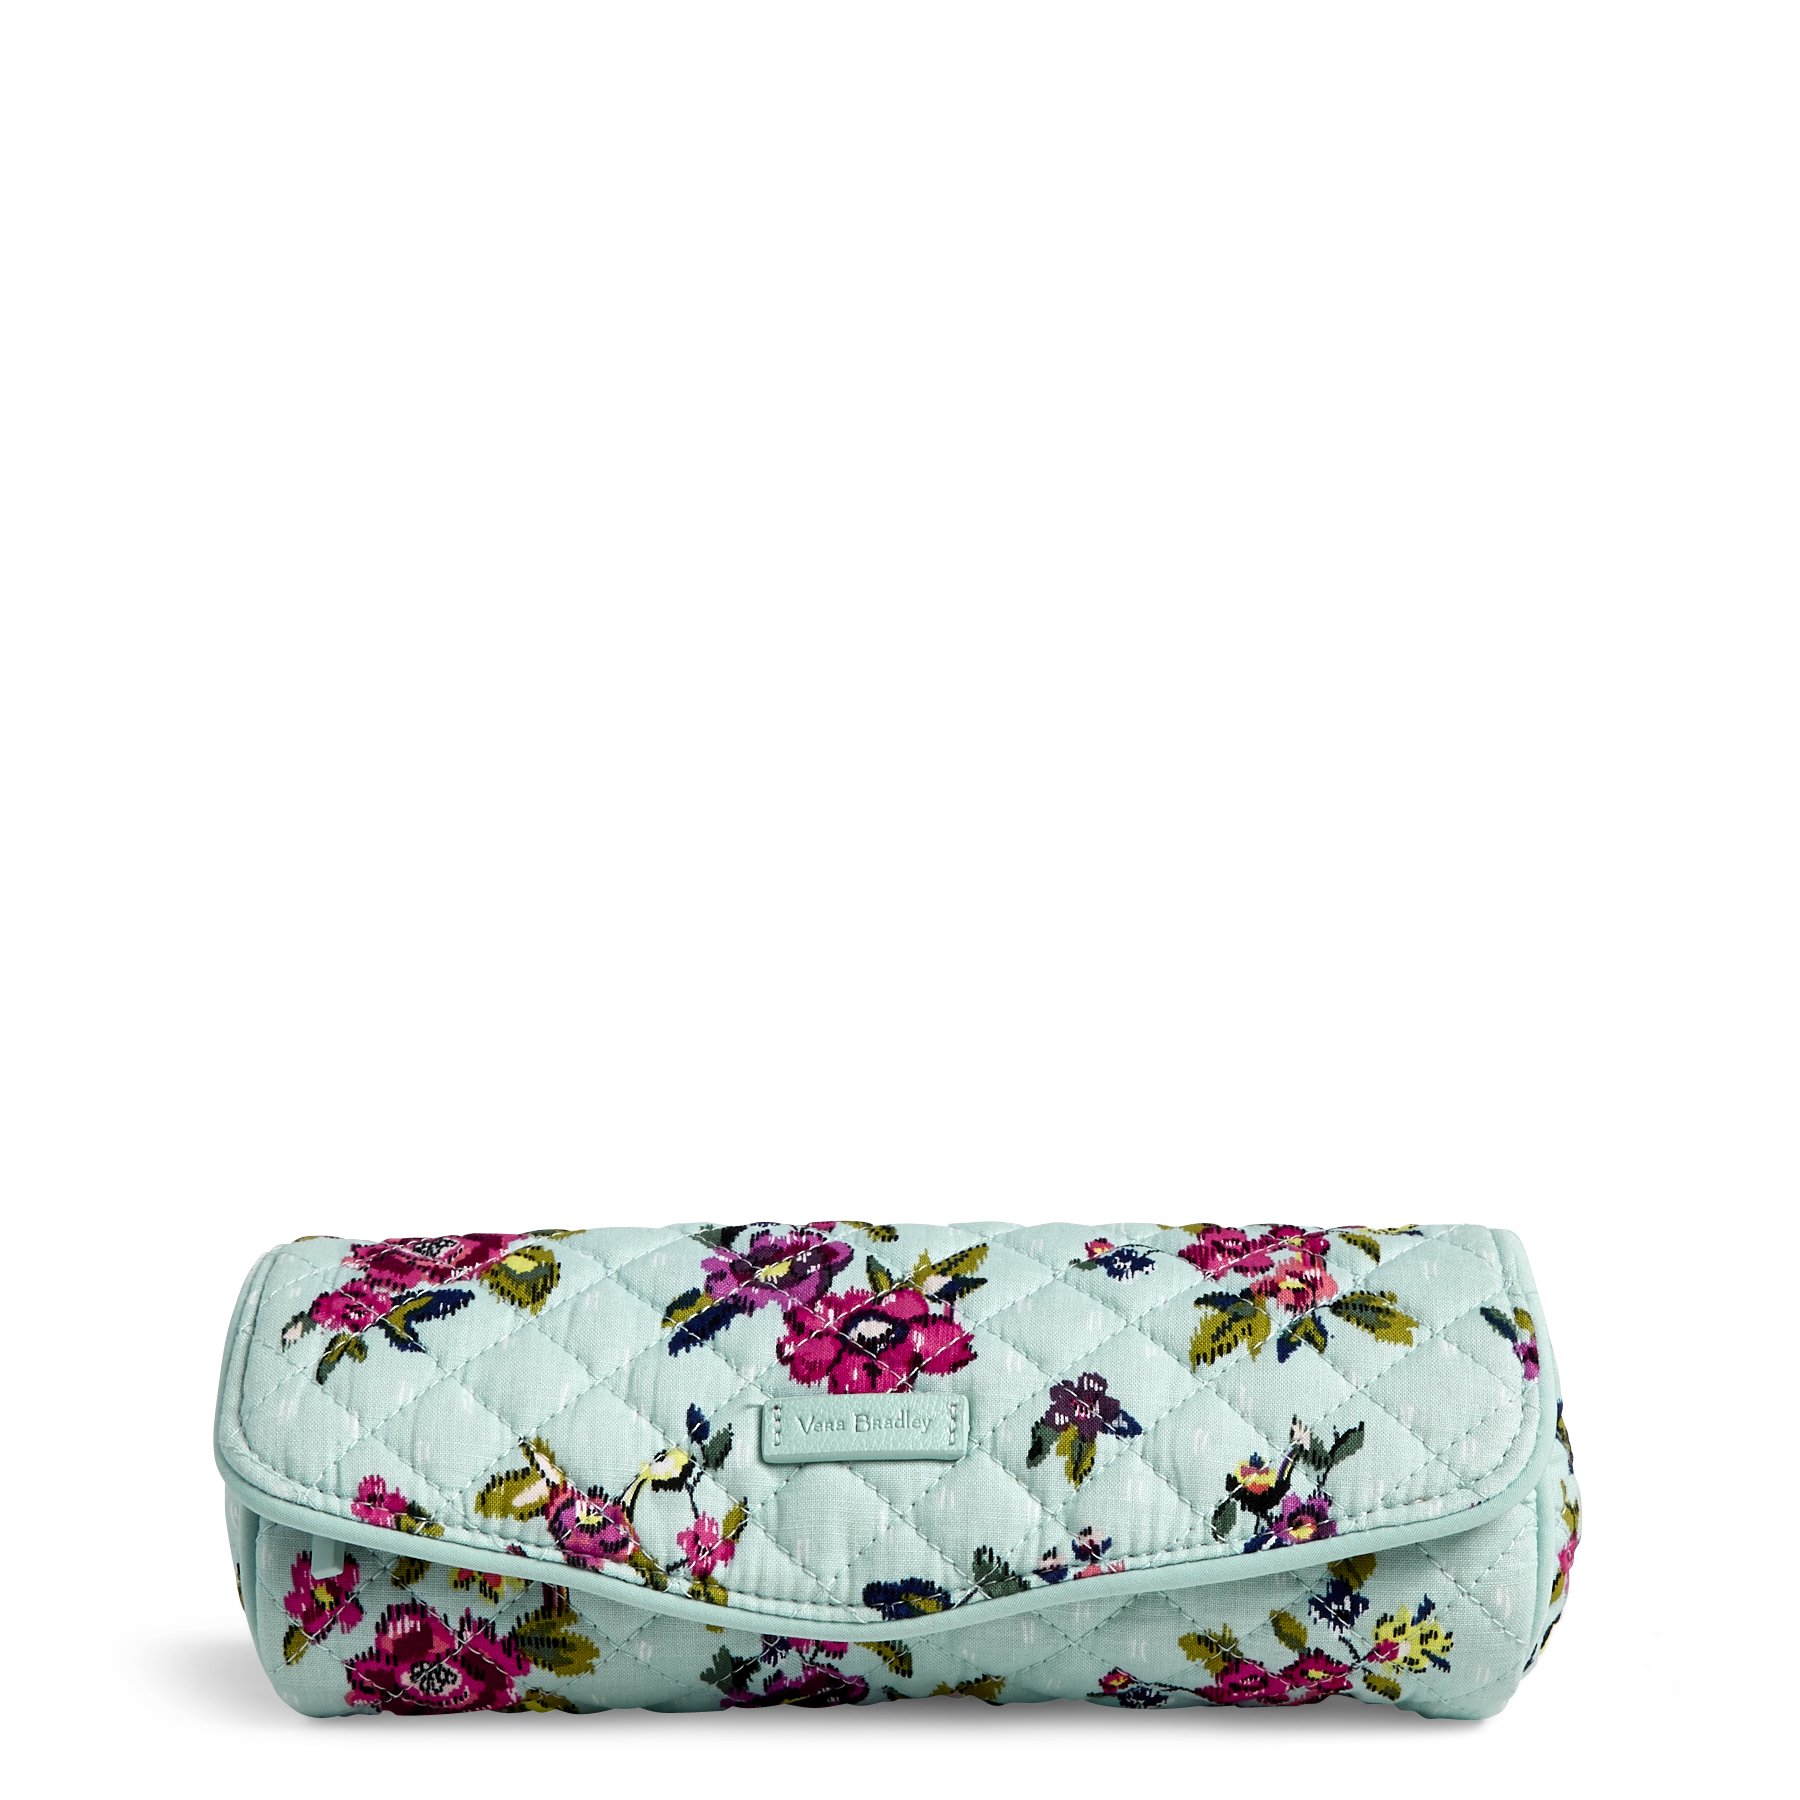 Vera Bradley Iconic on a Roll Case, Signature Cotton, Water Bouquet